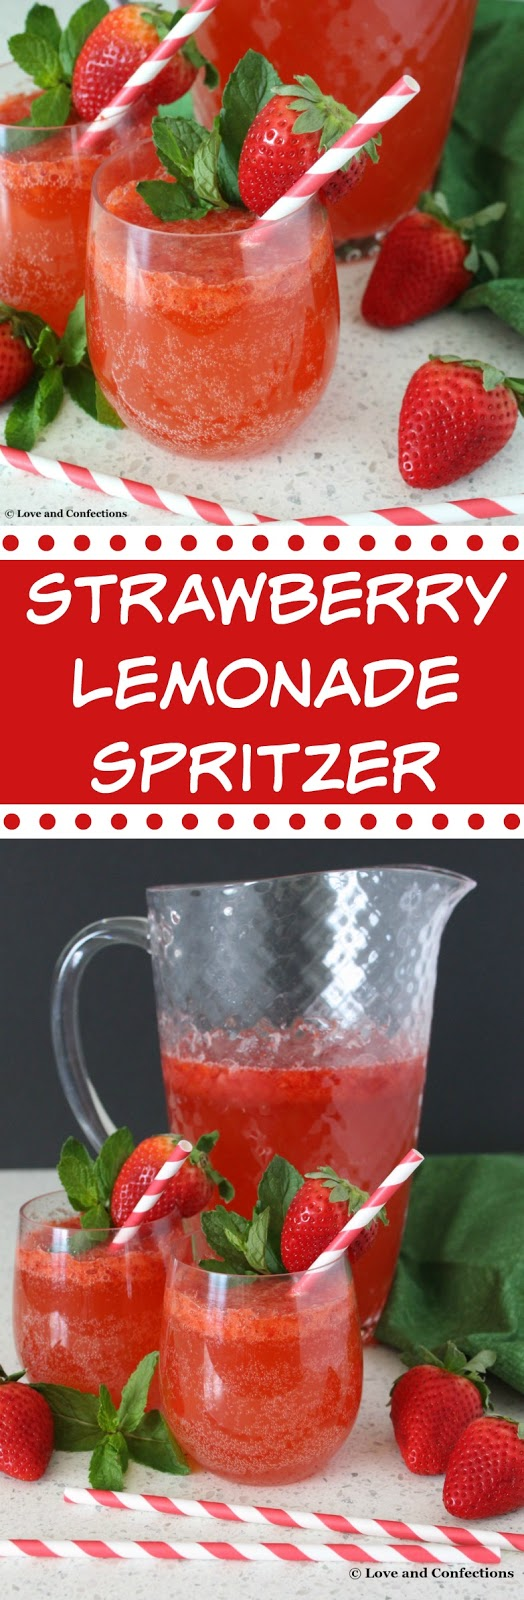 Strawberry Lemonade Spritzer from LoveandConfections.com